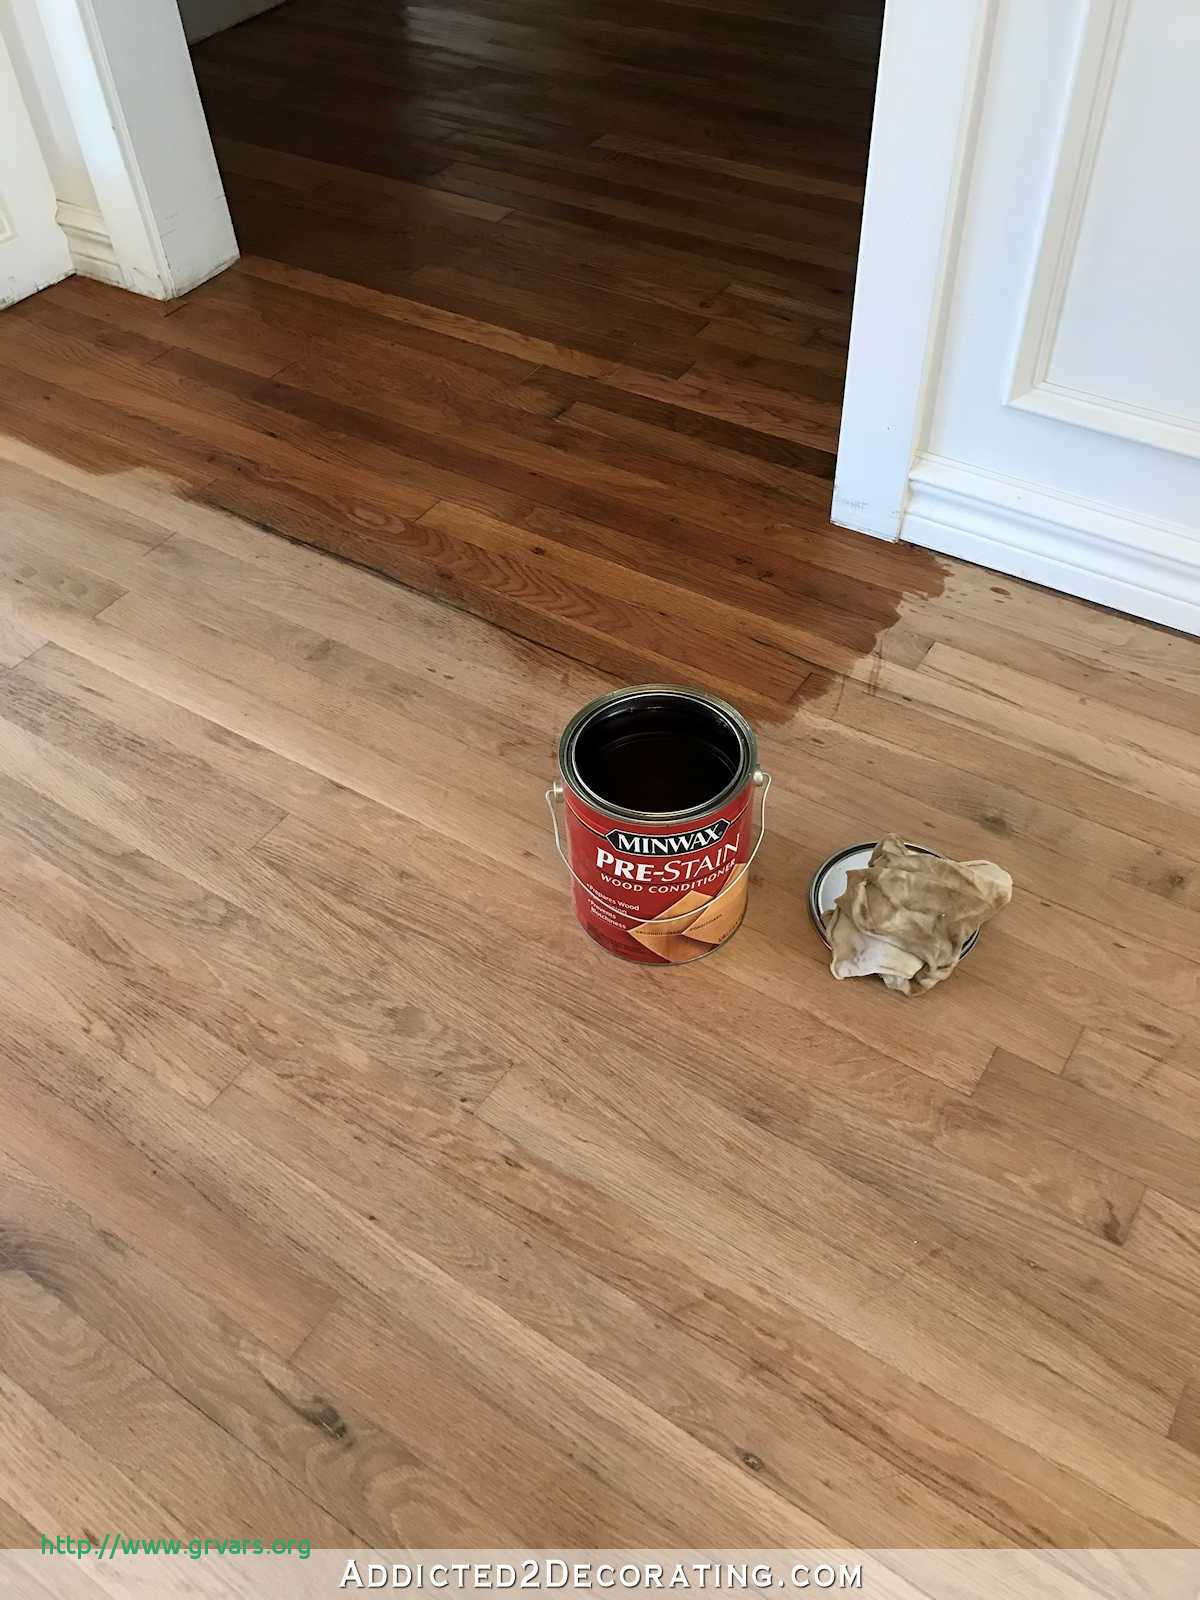 can you install solid hardwood floors on concrete of 24 impressionnant can you install hardwood floors on concrete slab with can you install hardwood floors on concrete slab a‰lagant hardwood floors vs carpet podemosleganes